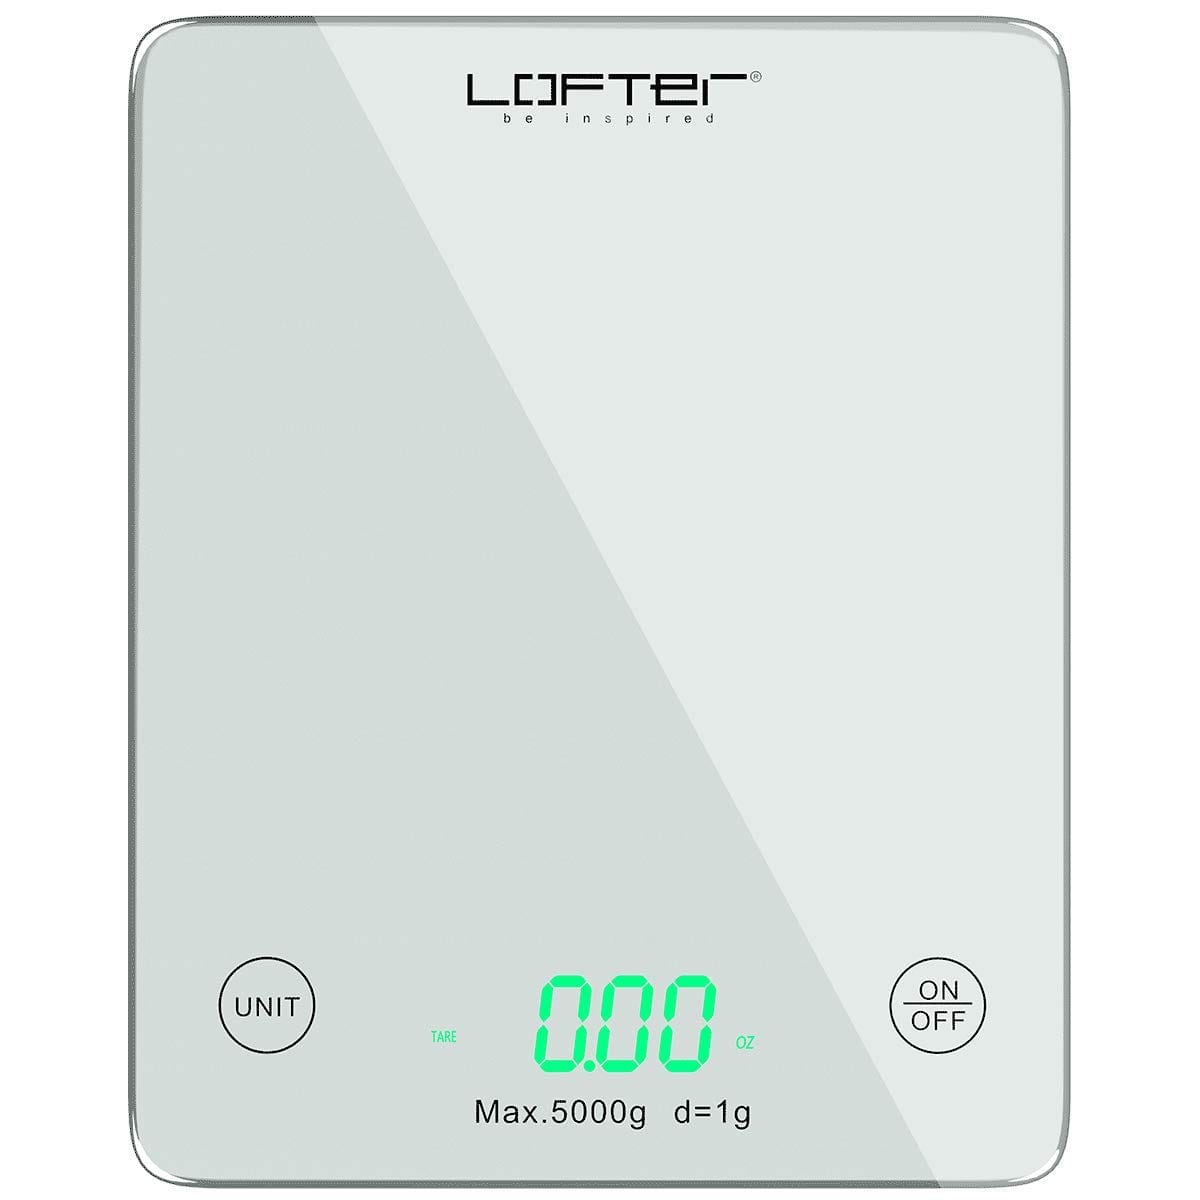 Digital Kitchen Scale with LED Display - 11lb/5KG Capacity $8.99 @ Amazon 40% off